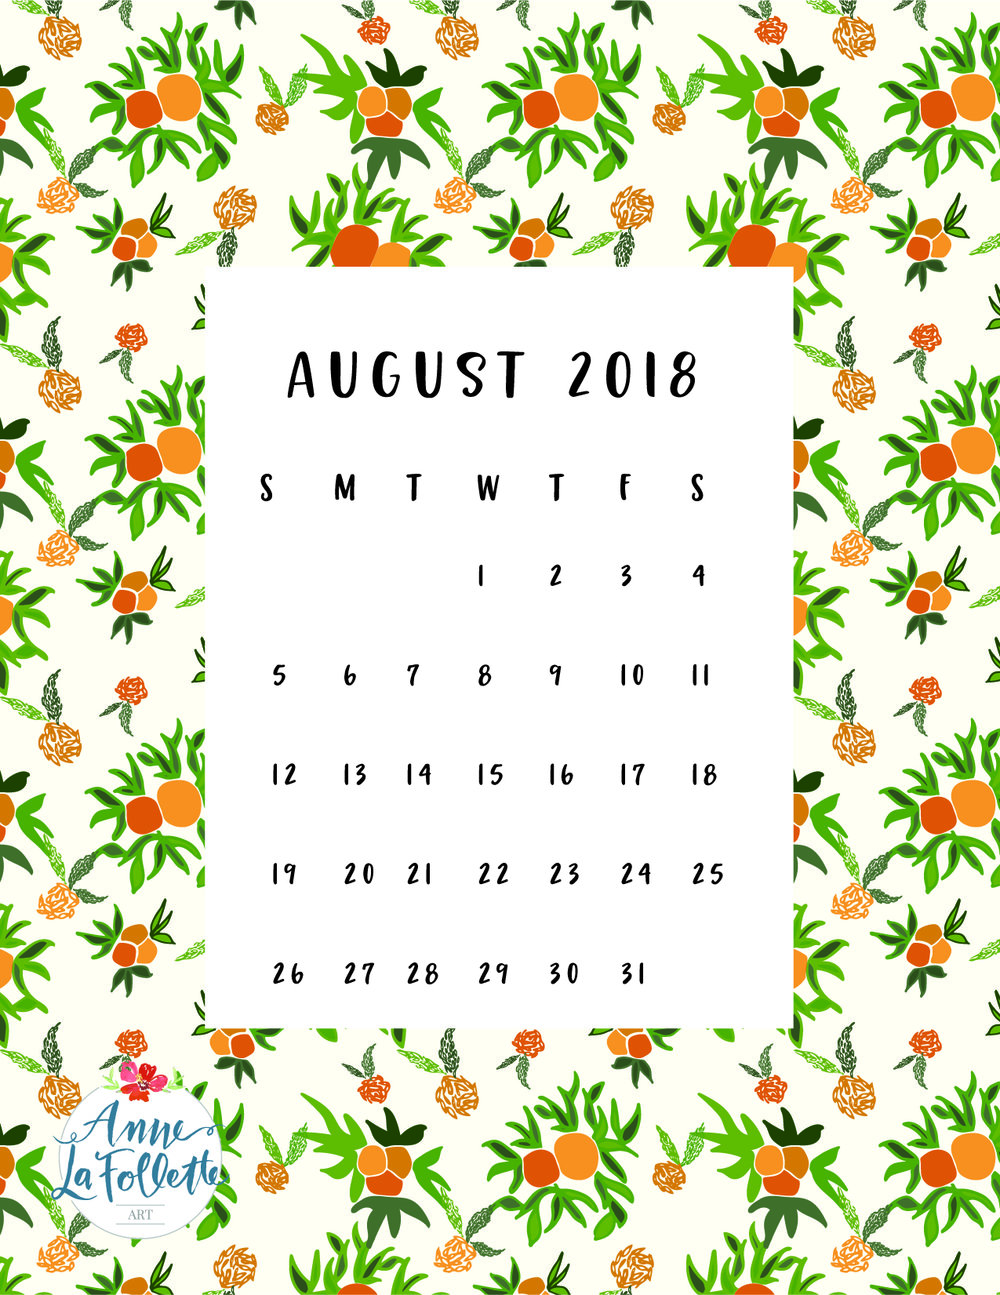 fridge August FREE calendar for 2018-08.jpg